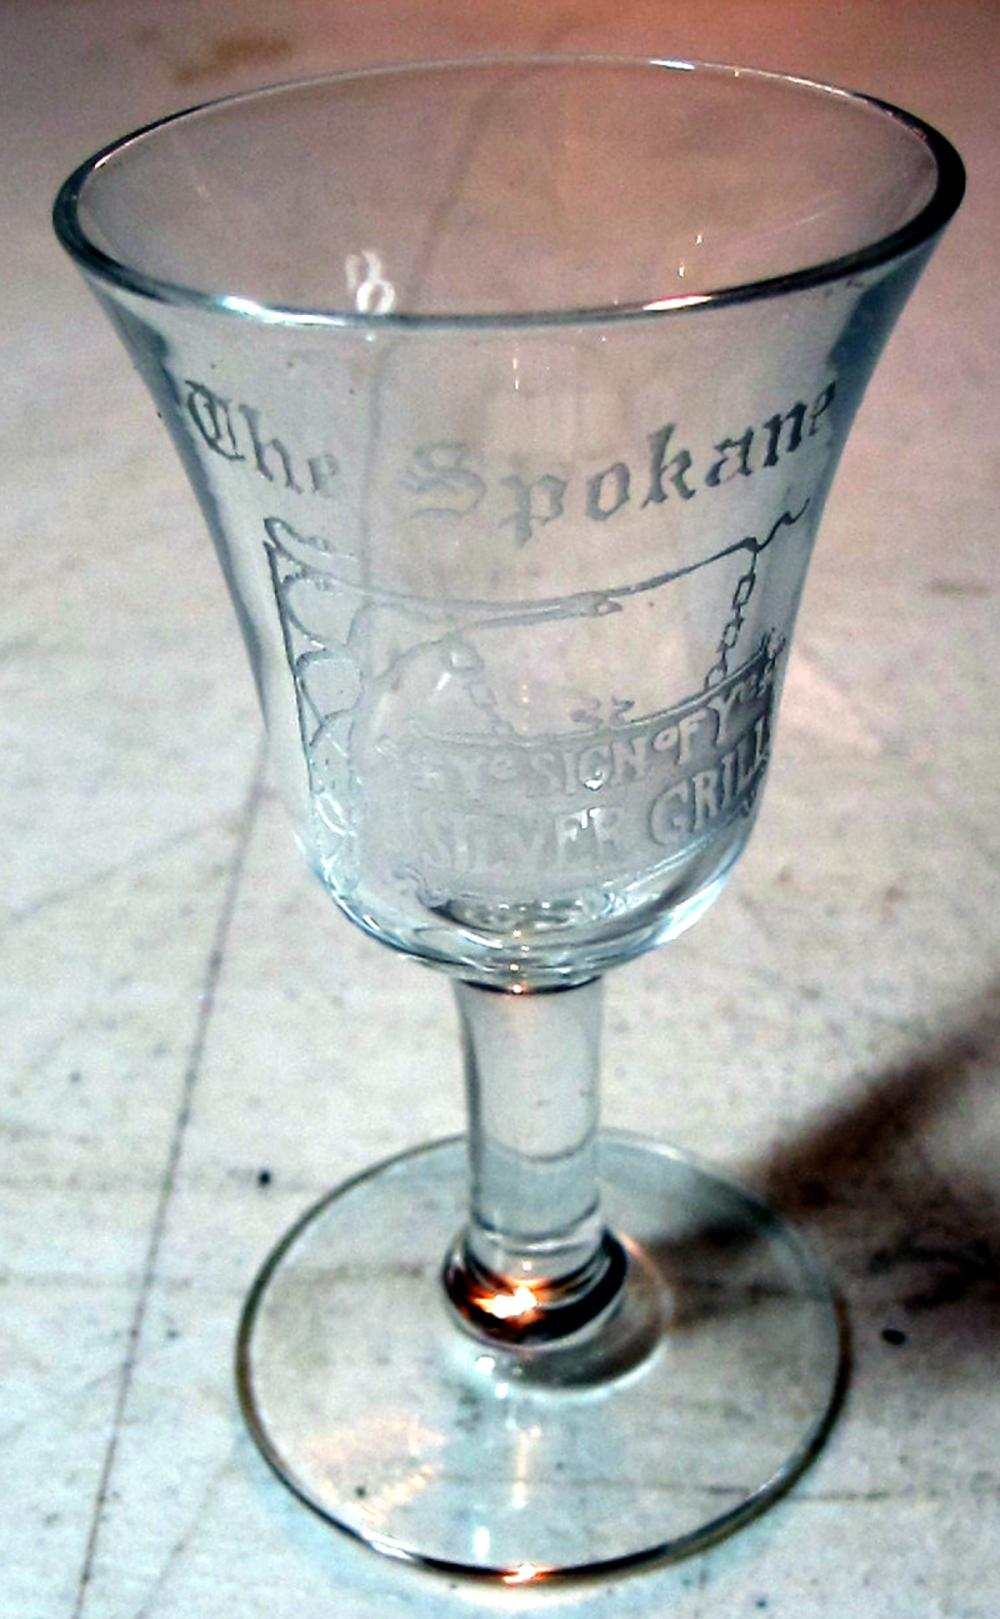 RARE OLD SPOKANE HOTEL YE SIGN OF YE SILVER GRILL PRE-PRO ETCHED SHOT GLASS